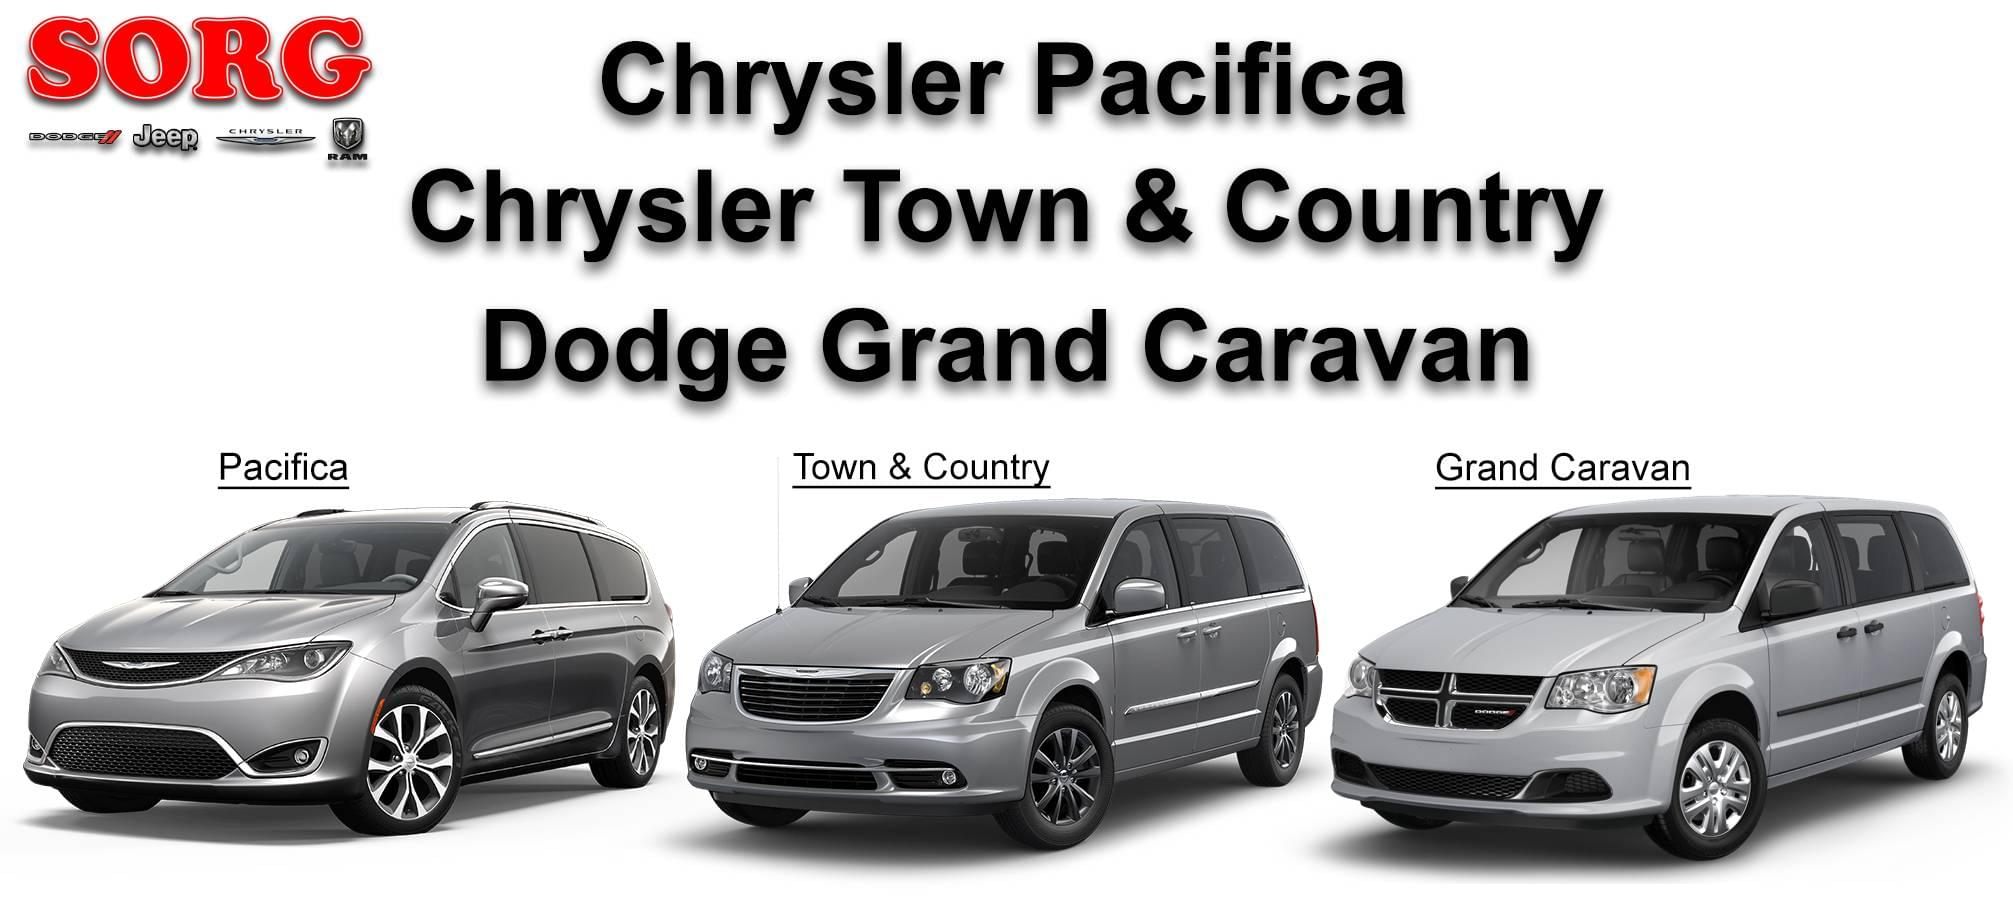 Comprehensive Review Chrysler Pacifica Chrysler Town